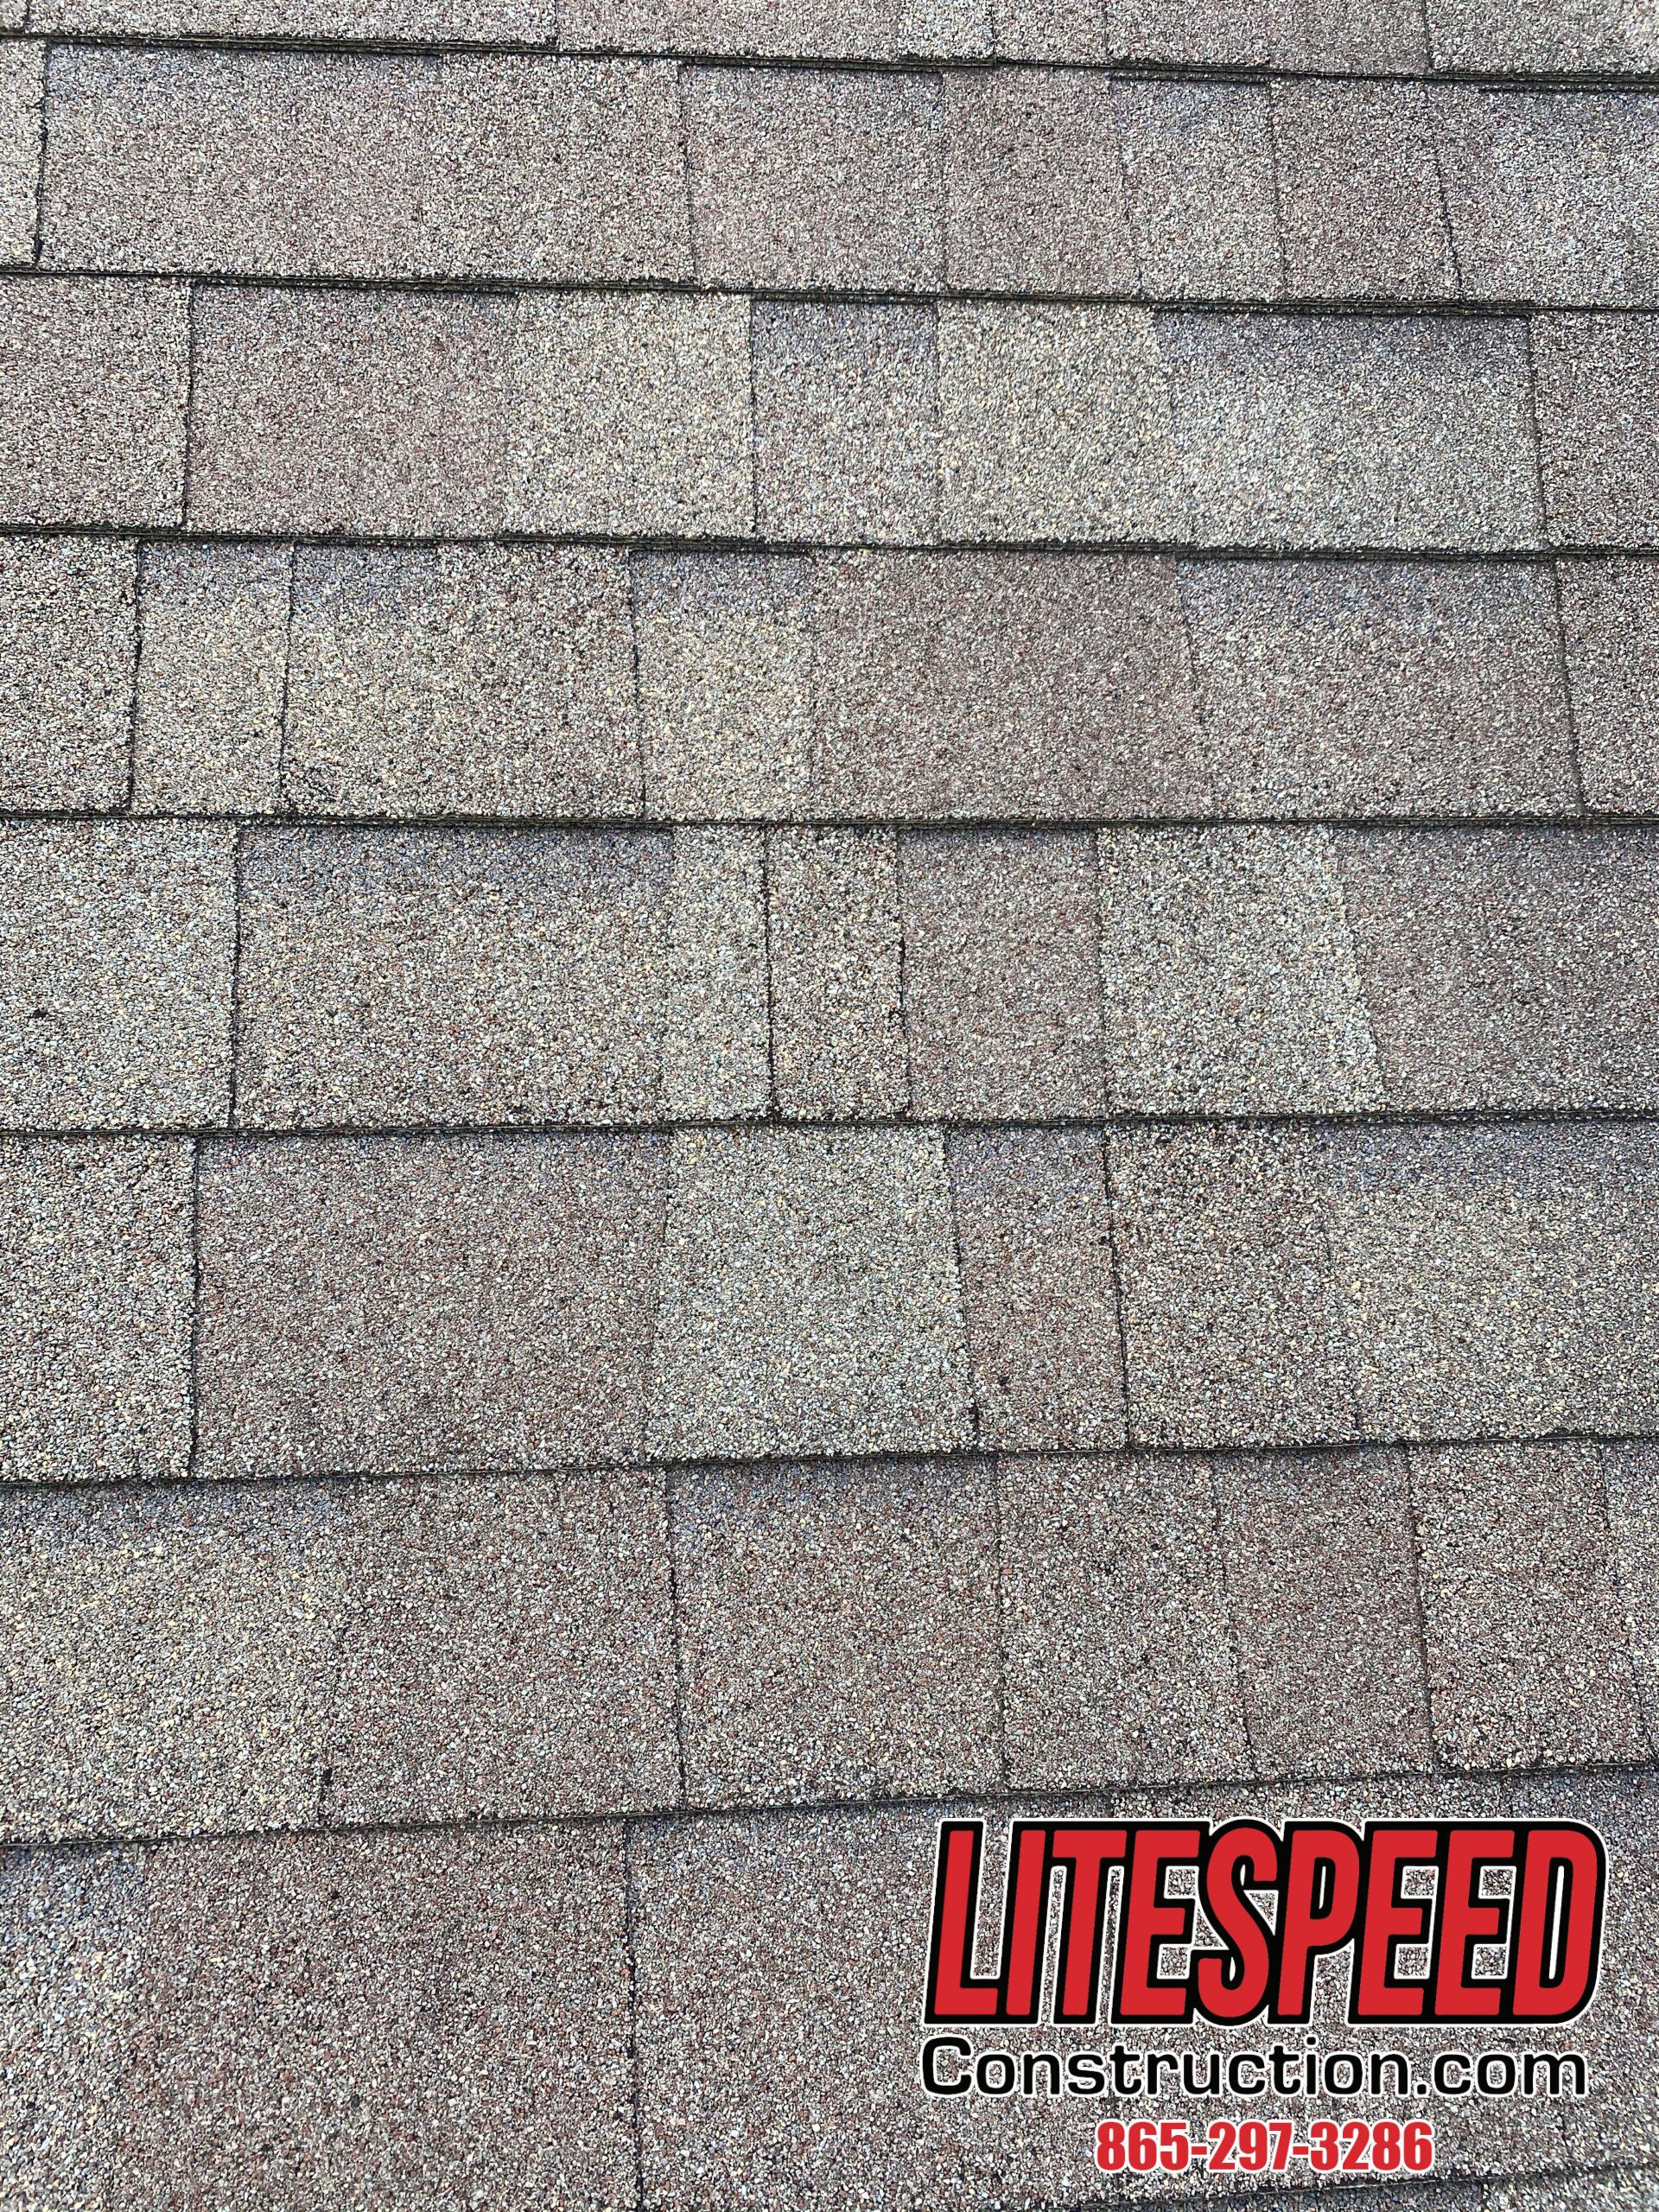 This is a picture of shingles that are correctly staggered